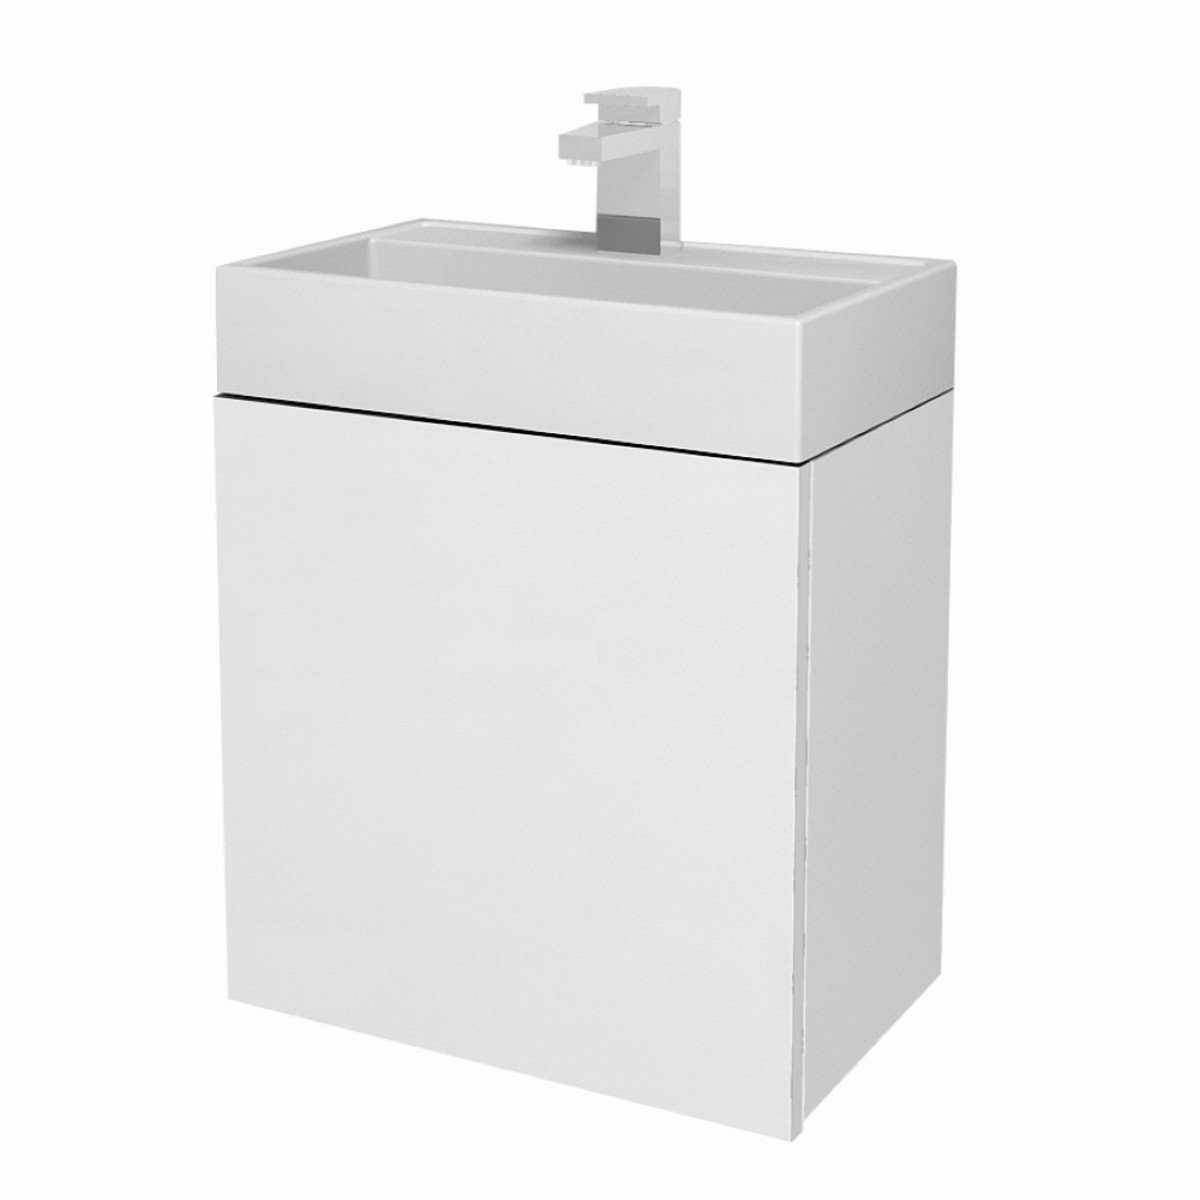 Tiger Items Meuble Sous Lavabo Wc 40cm Blanc Brillant 592710141